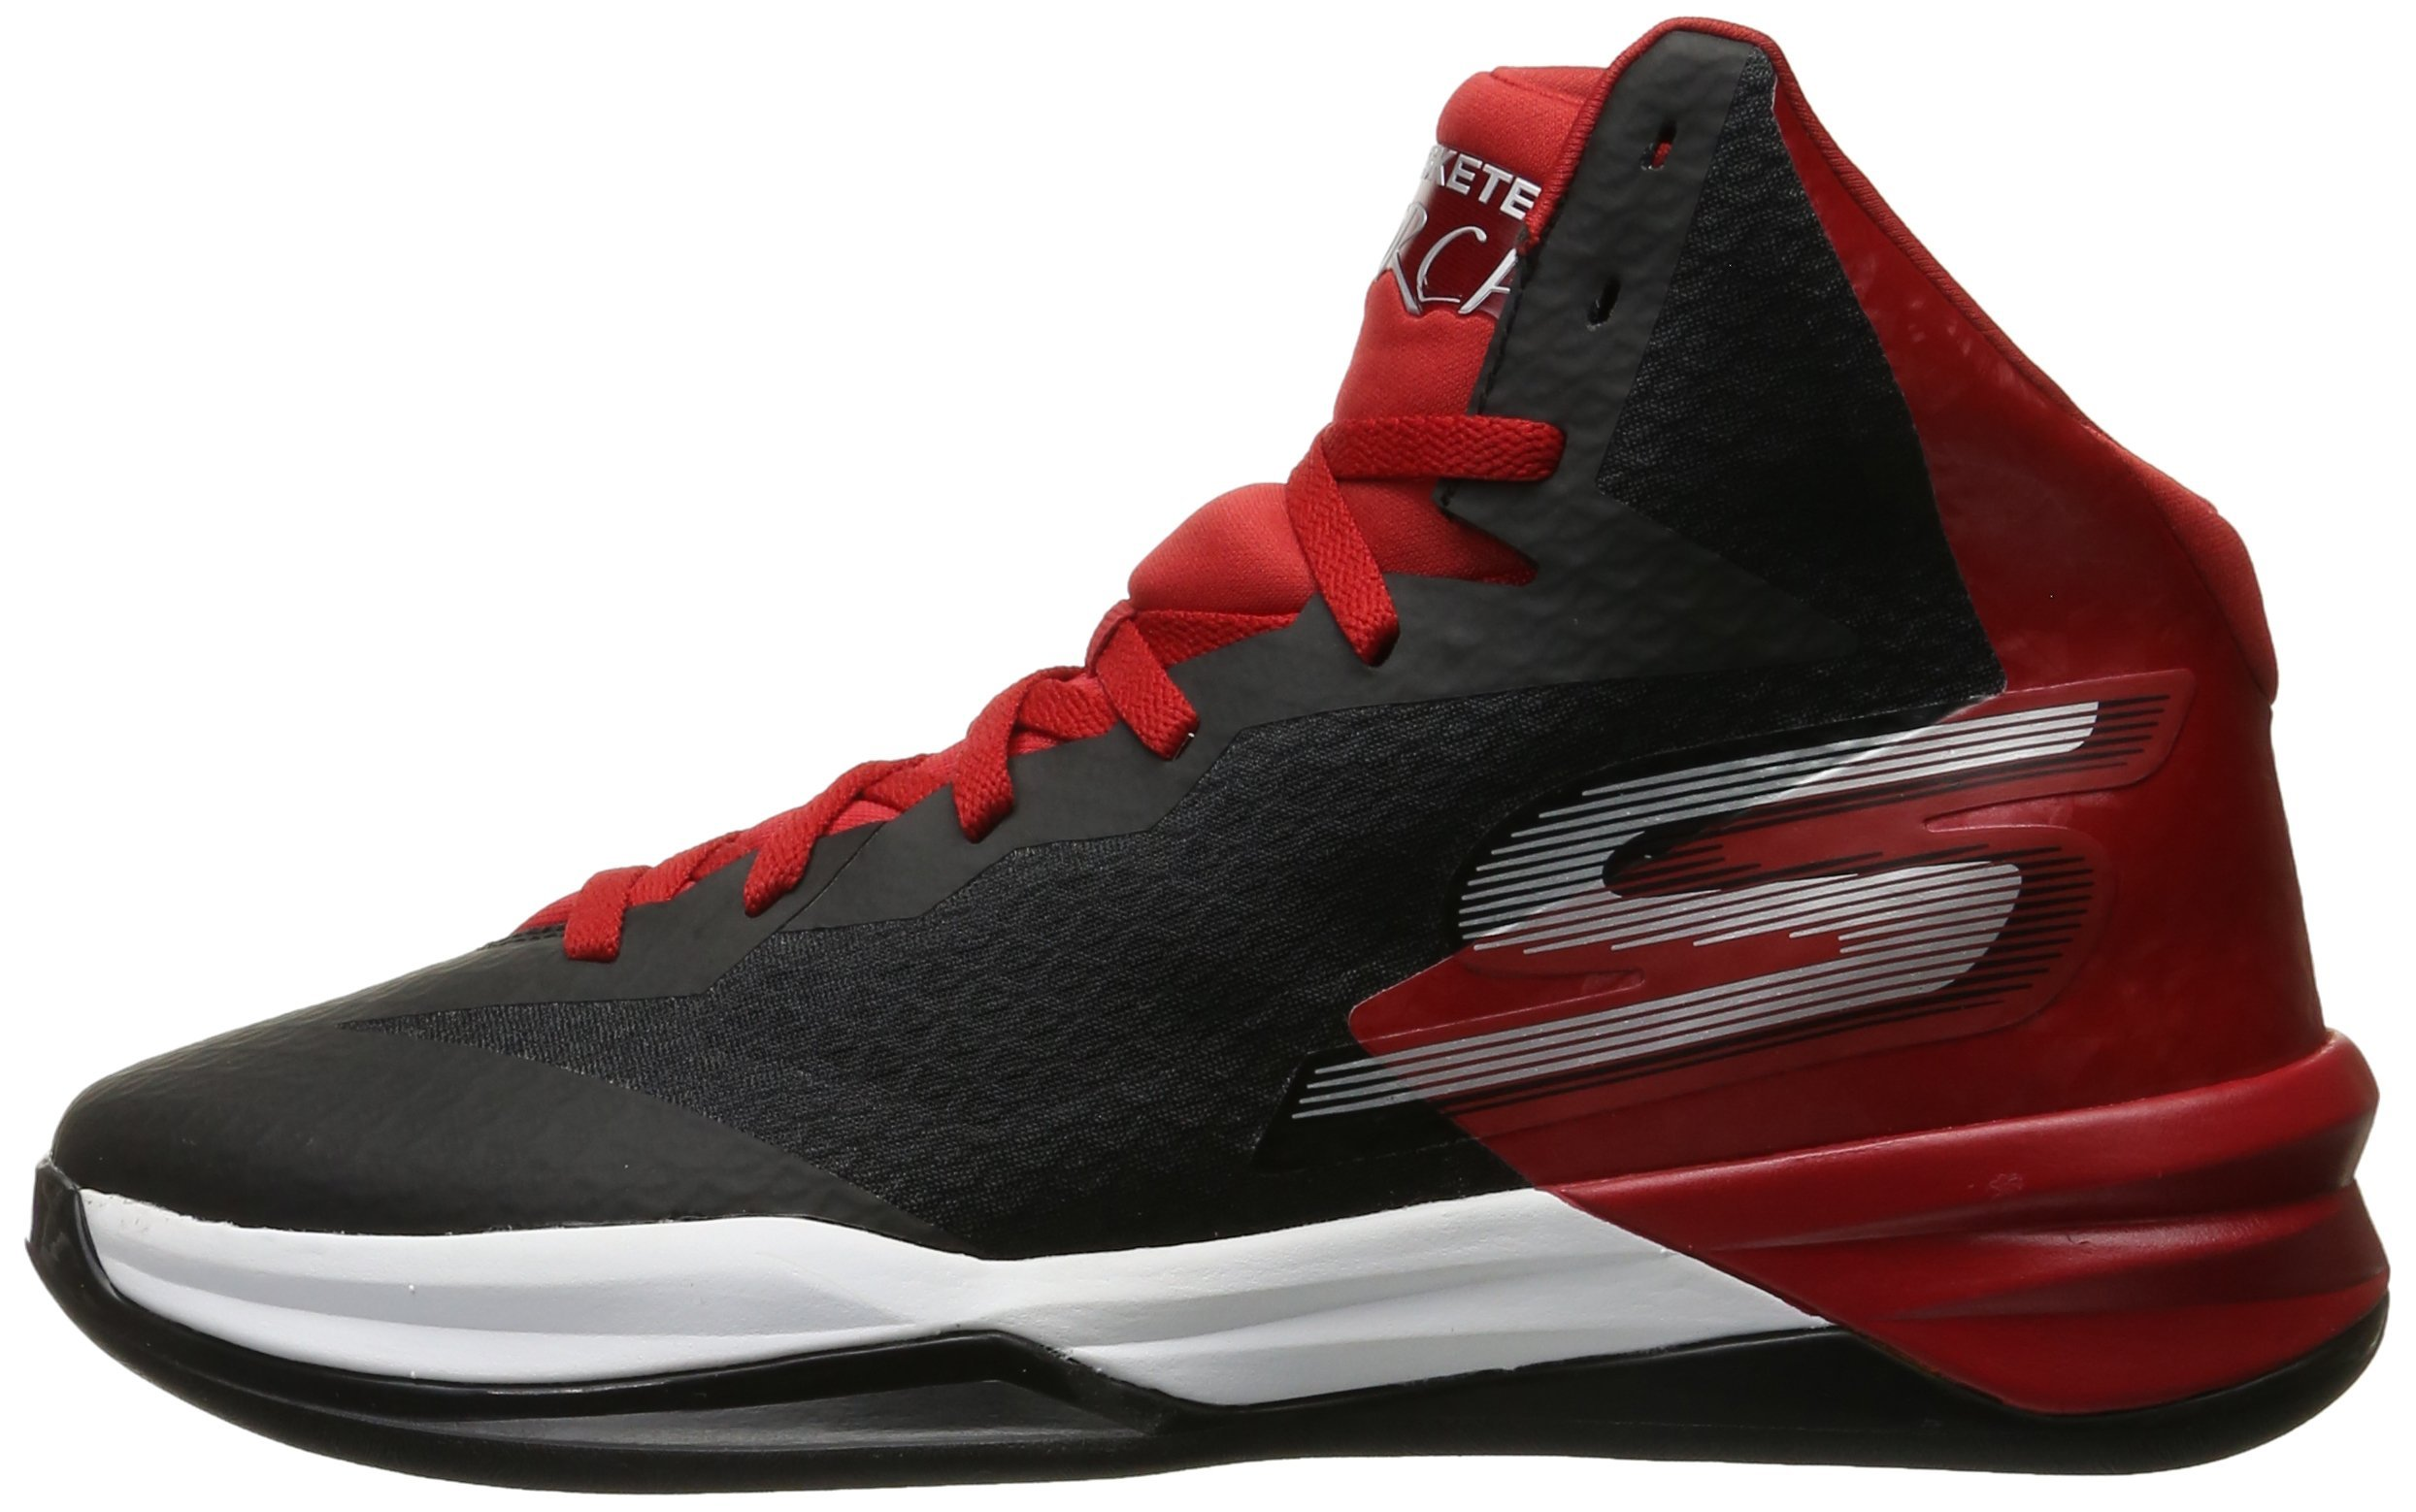 pasta Interesar articulo  Skechers Performance Men's Go Torch Basketball Shoe- Buy Online in Cambodia  at cambodia.desertcart.com. ProductId : 39976769.